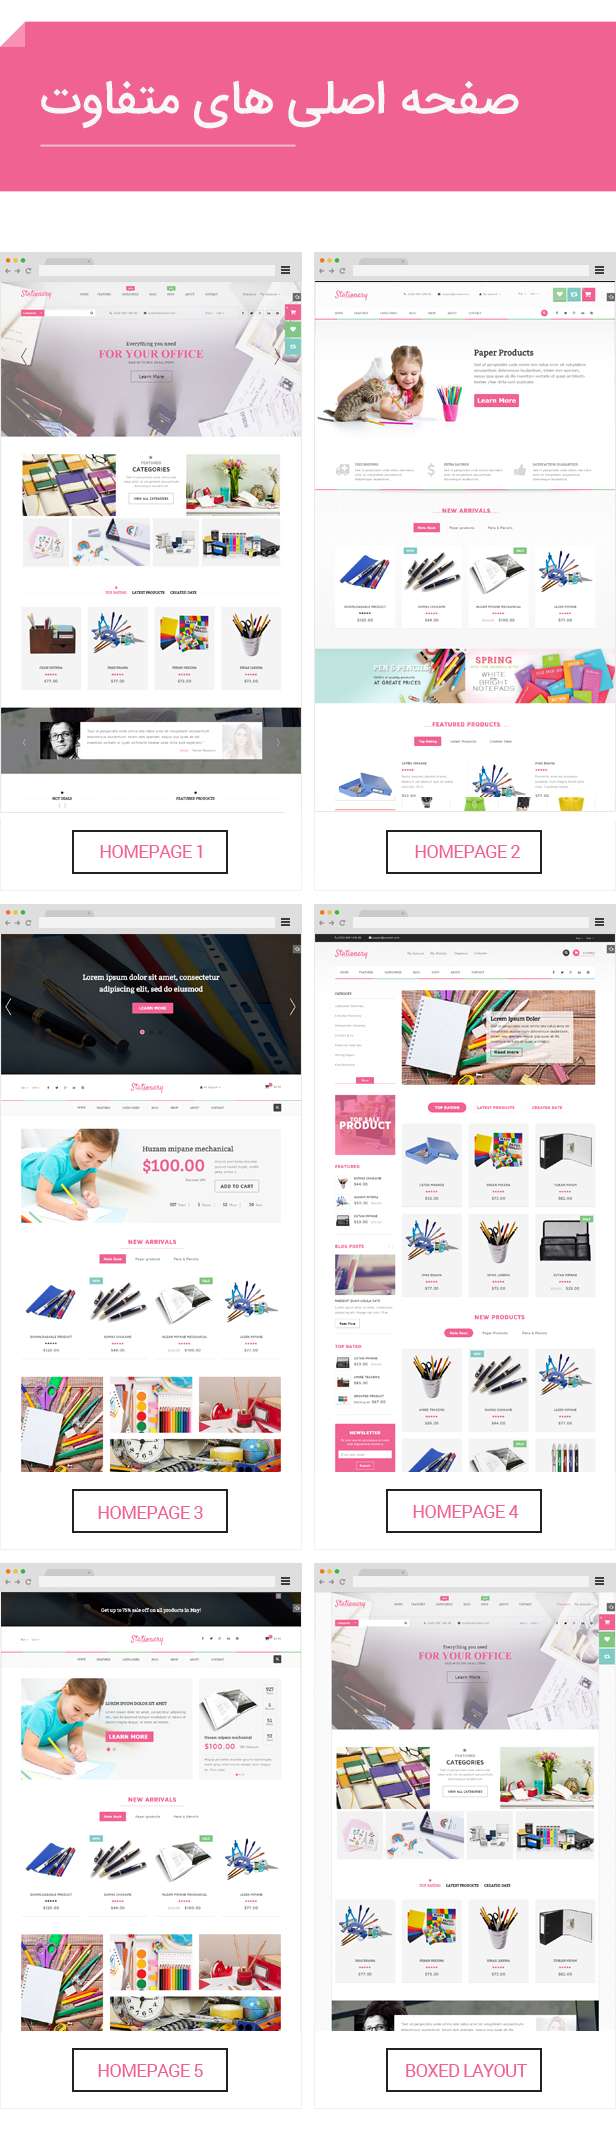 http://joomaria.ir/images/image-site/Stationery/Stationery-Template4.png